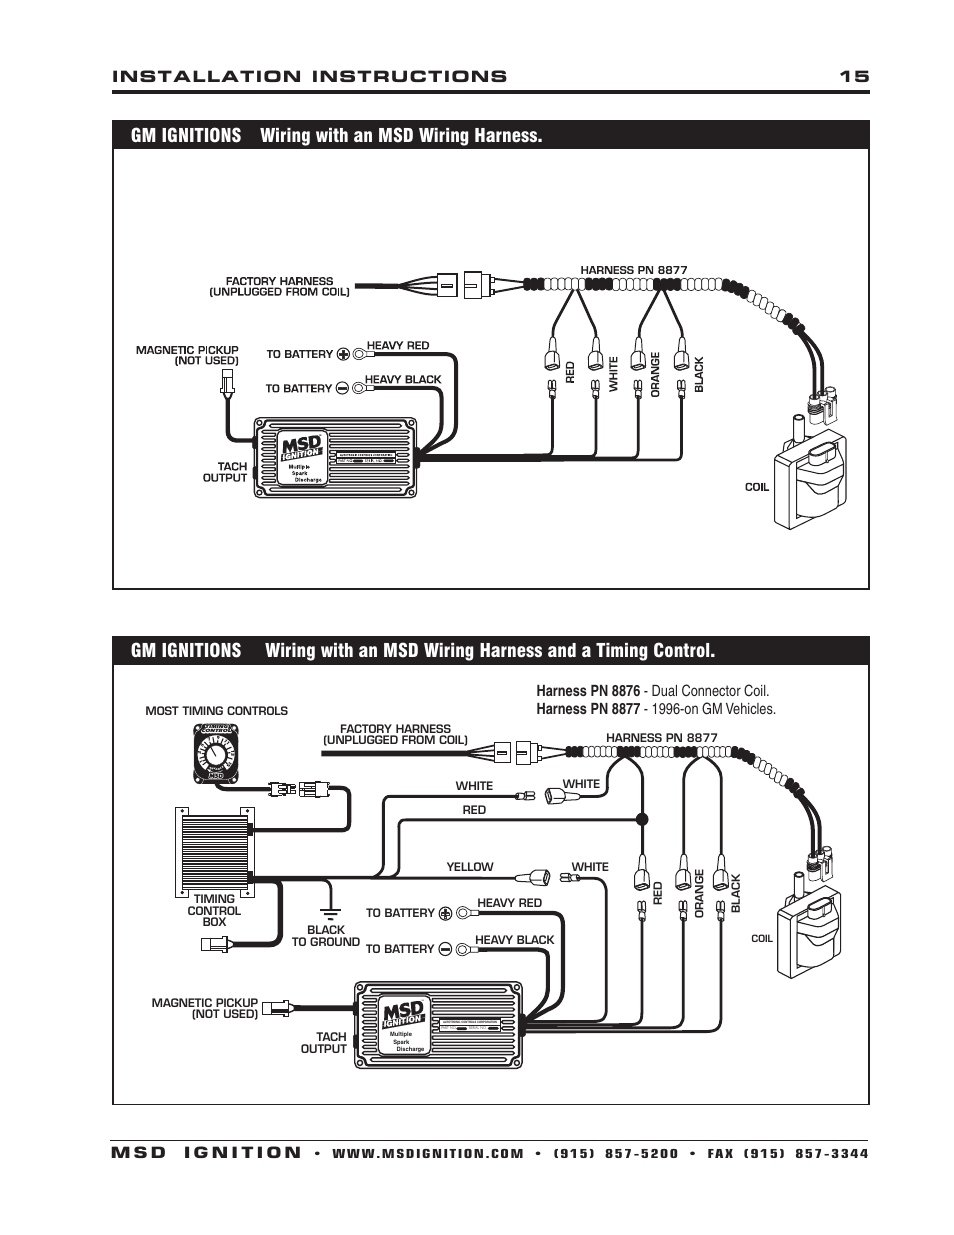 Gm ignitions wiring with an msd wiring harness | MSD 6430 6ALN Ignition  Control Installation User Manual | Page 15 / 24Manuals Directory